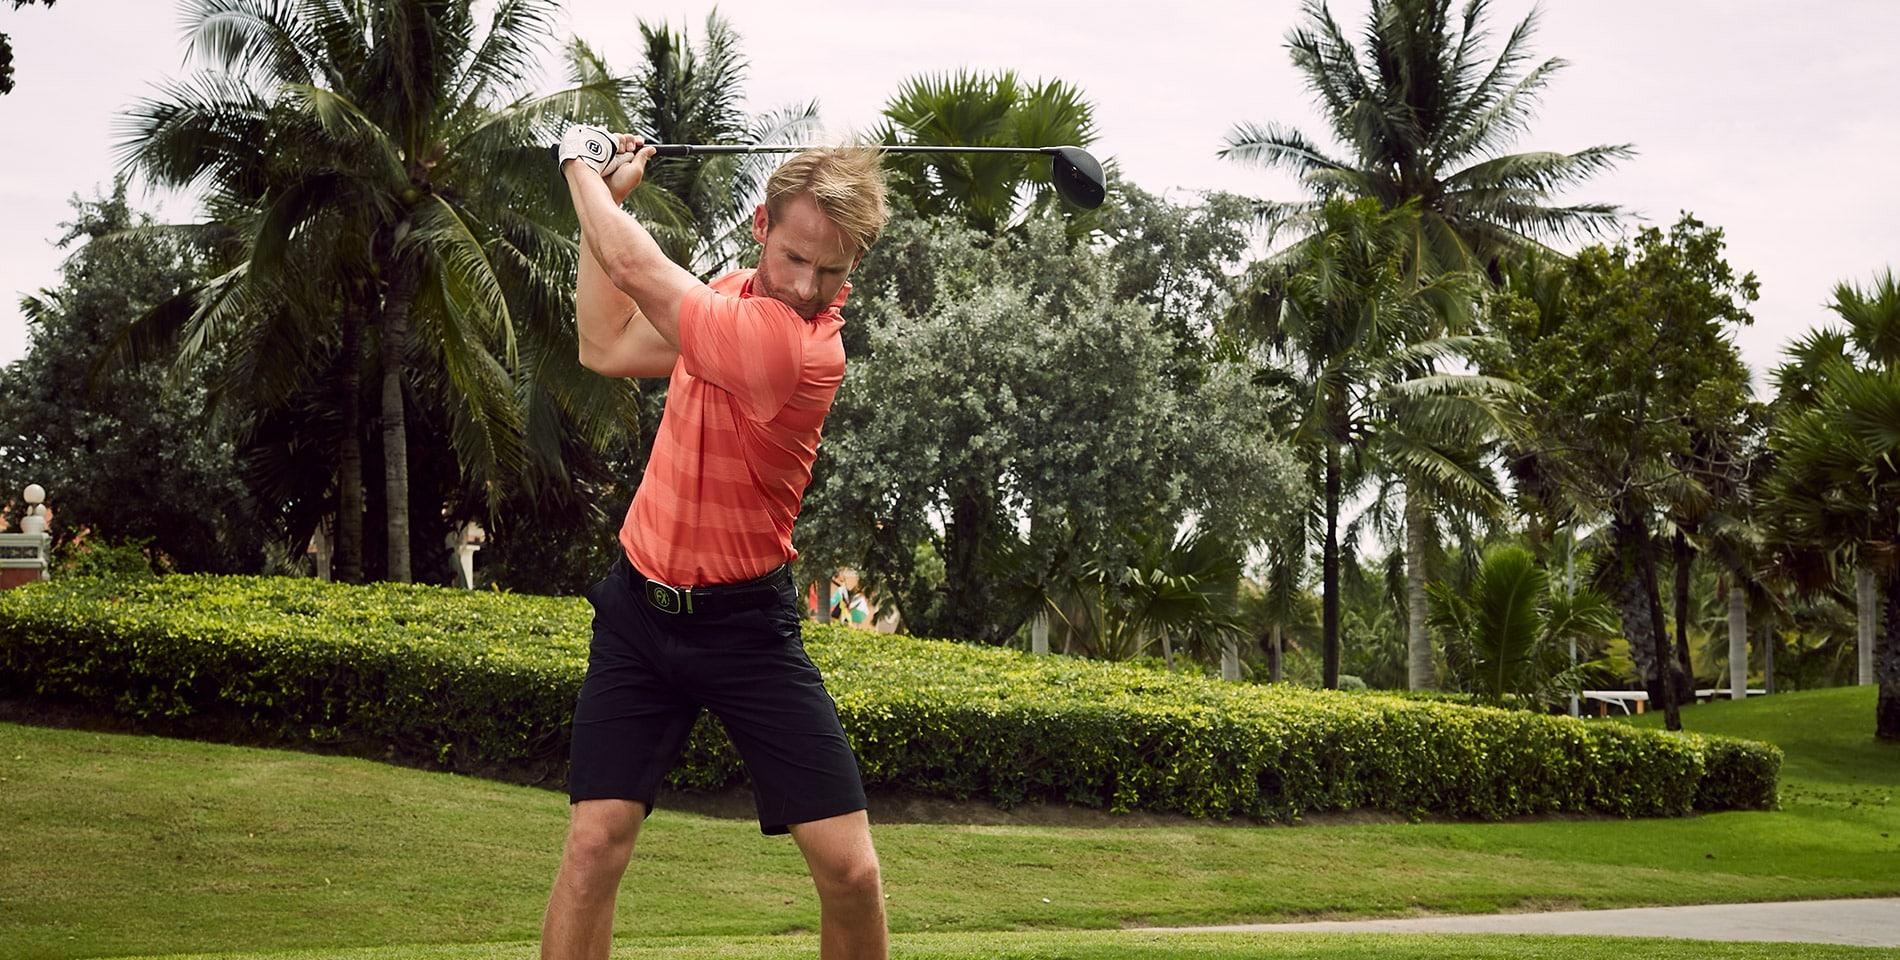 Golf equipment technology helps to hit longer drives